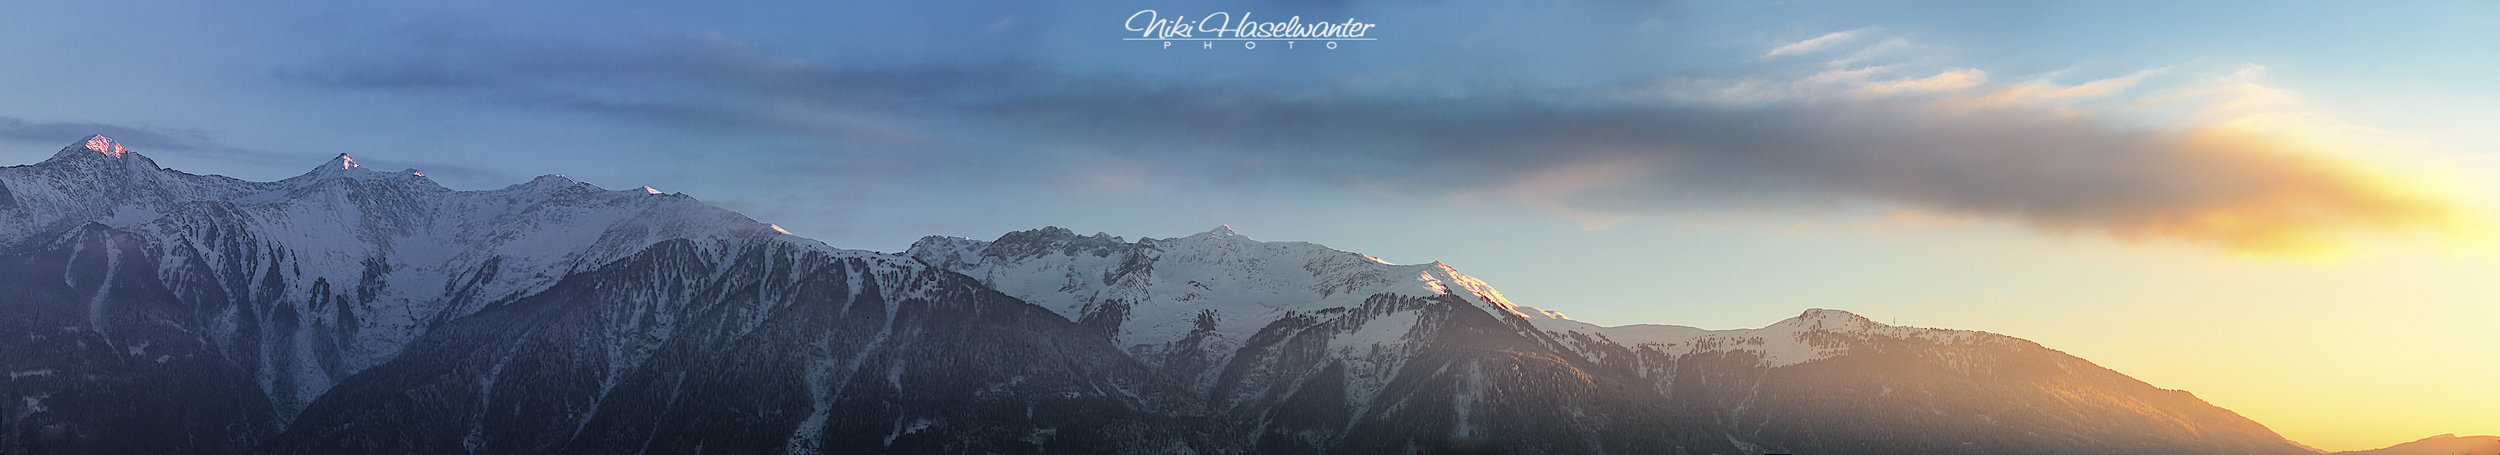 Evening-panorama from my terrace. The second summit from the left is the target.